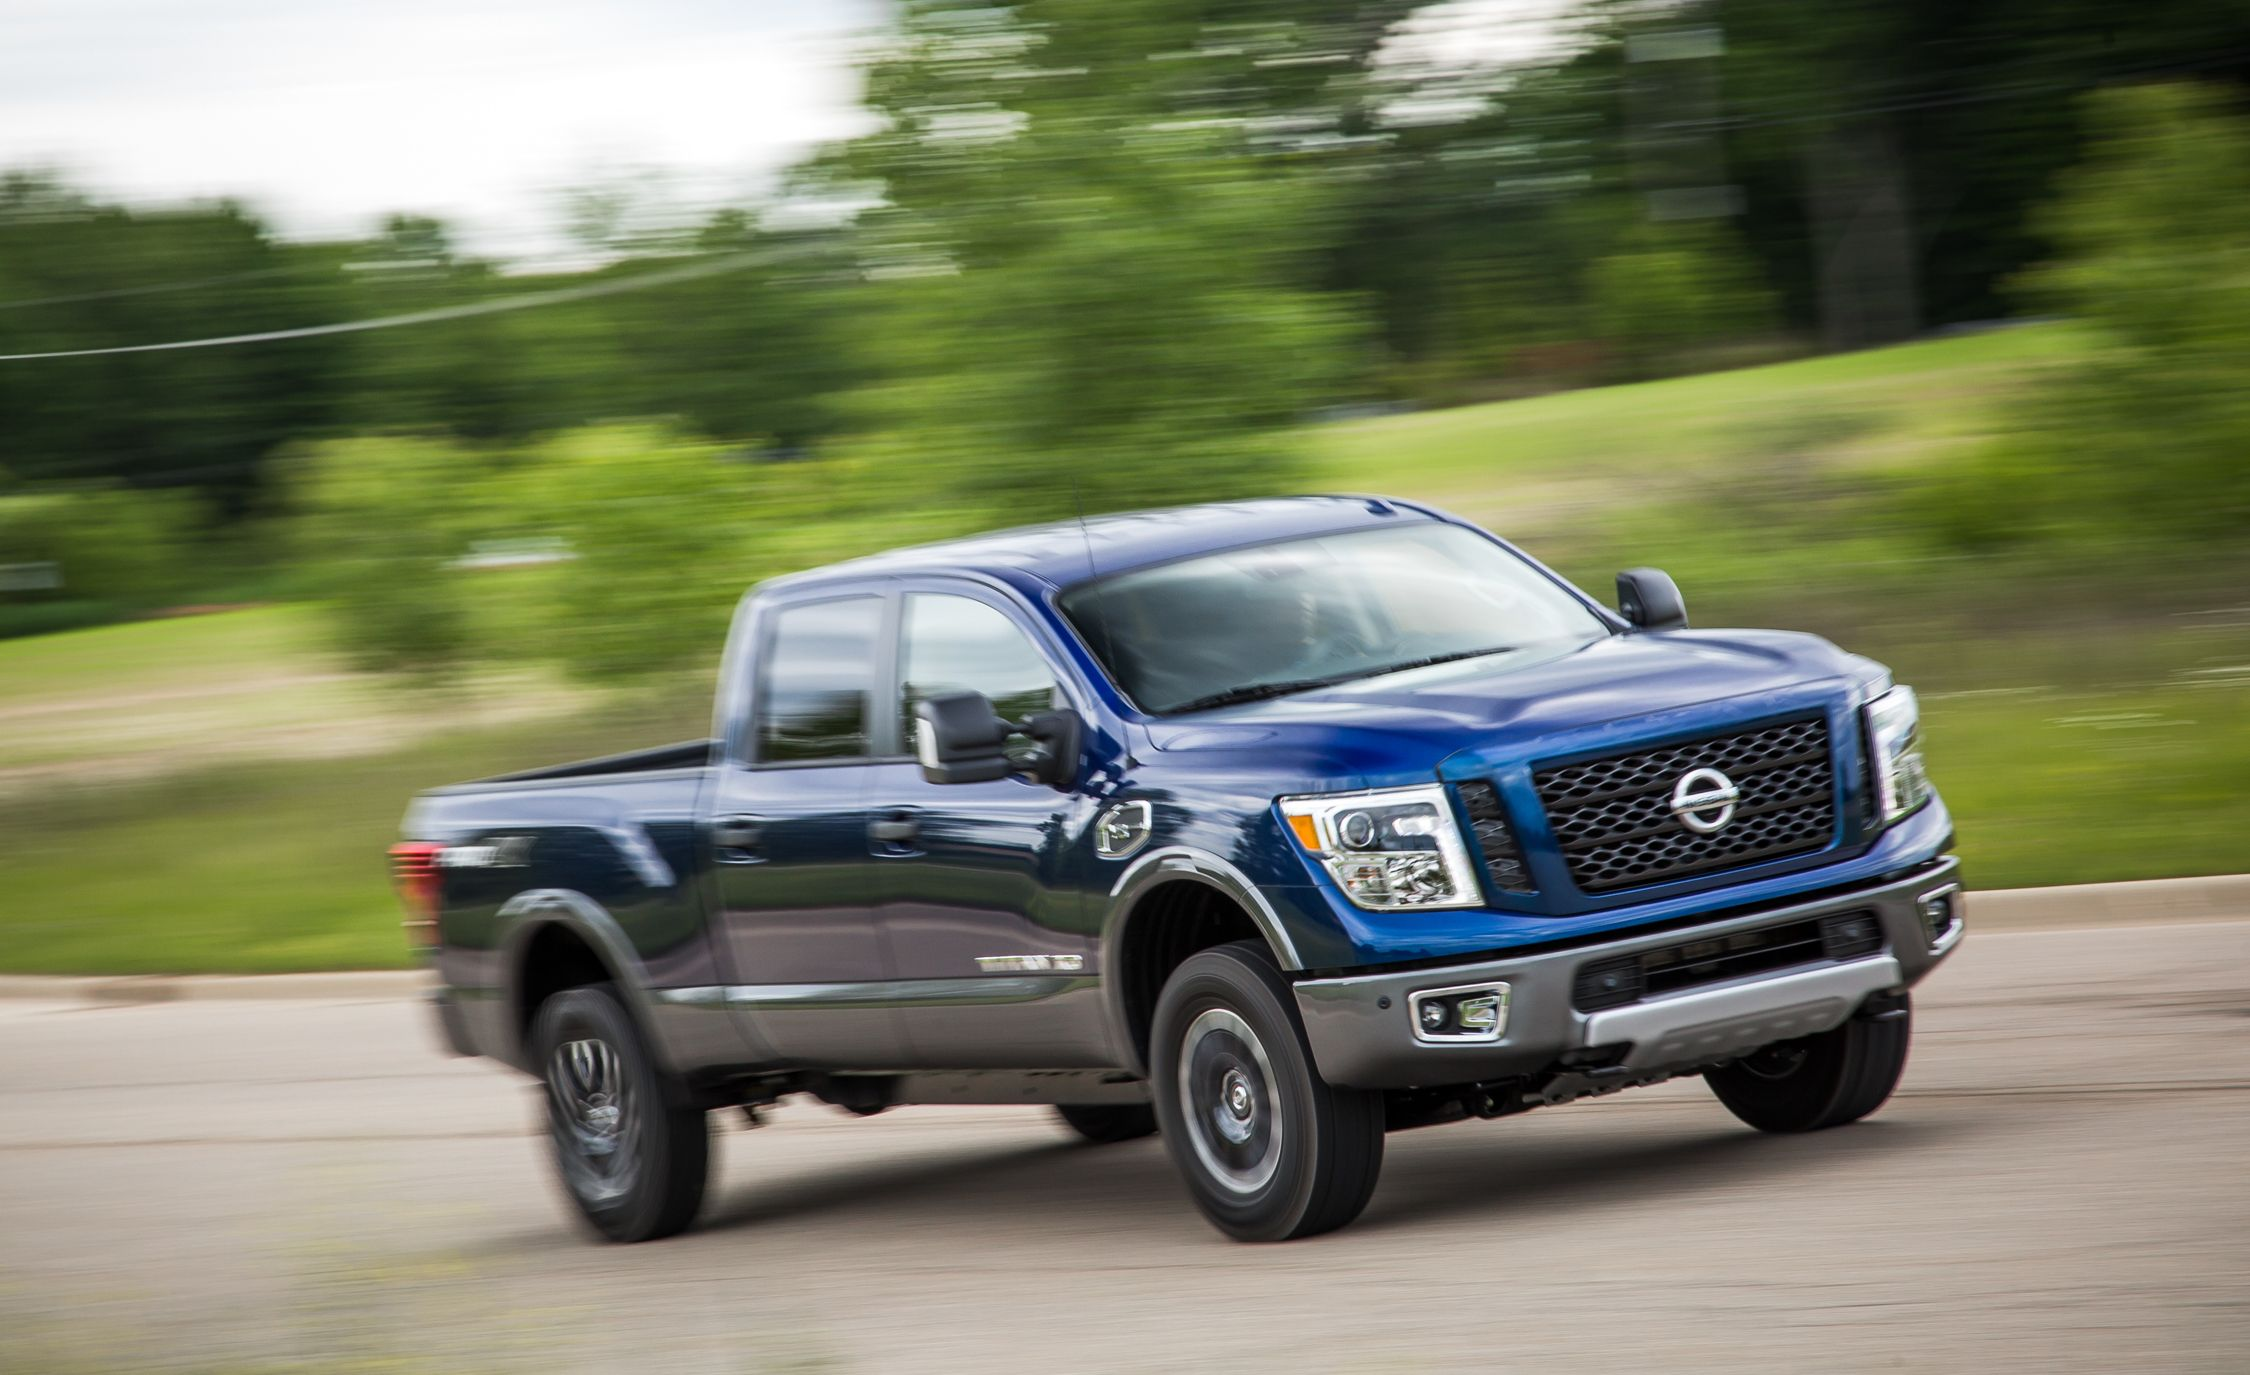 Nissan Titan Xd Reviews Nissan Titan Xd Price Photos And Specs